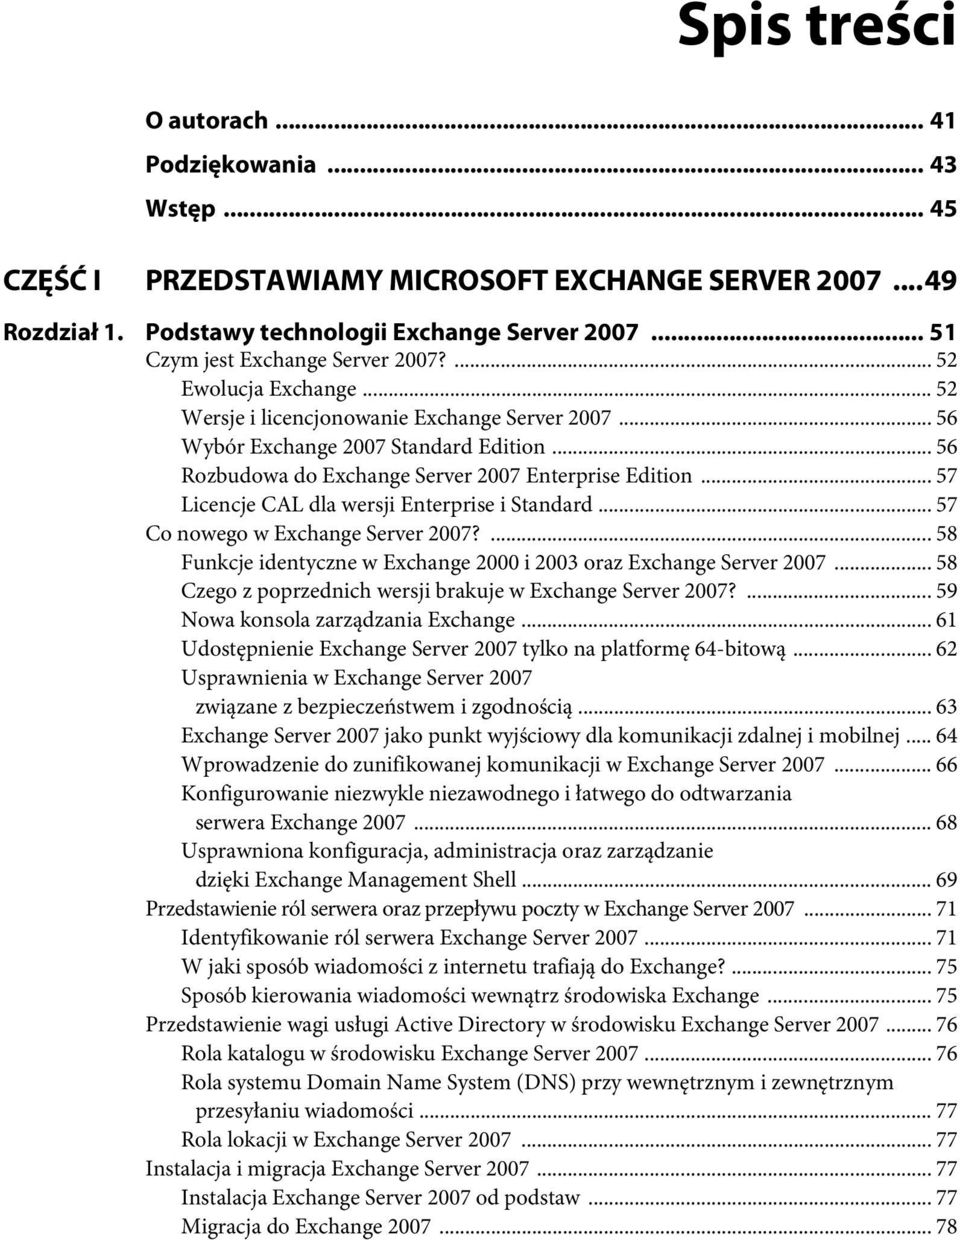 .. 56 Rozbudowa do Exchange Server 2007 Enterprise Edition... 57 Licencje CAL dla wersji Enterprise i Standard... 57 Co nowego w Exchange Server 2007?